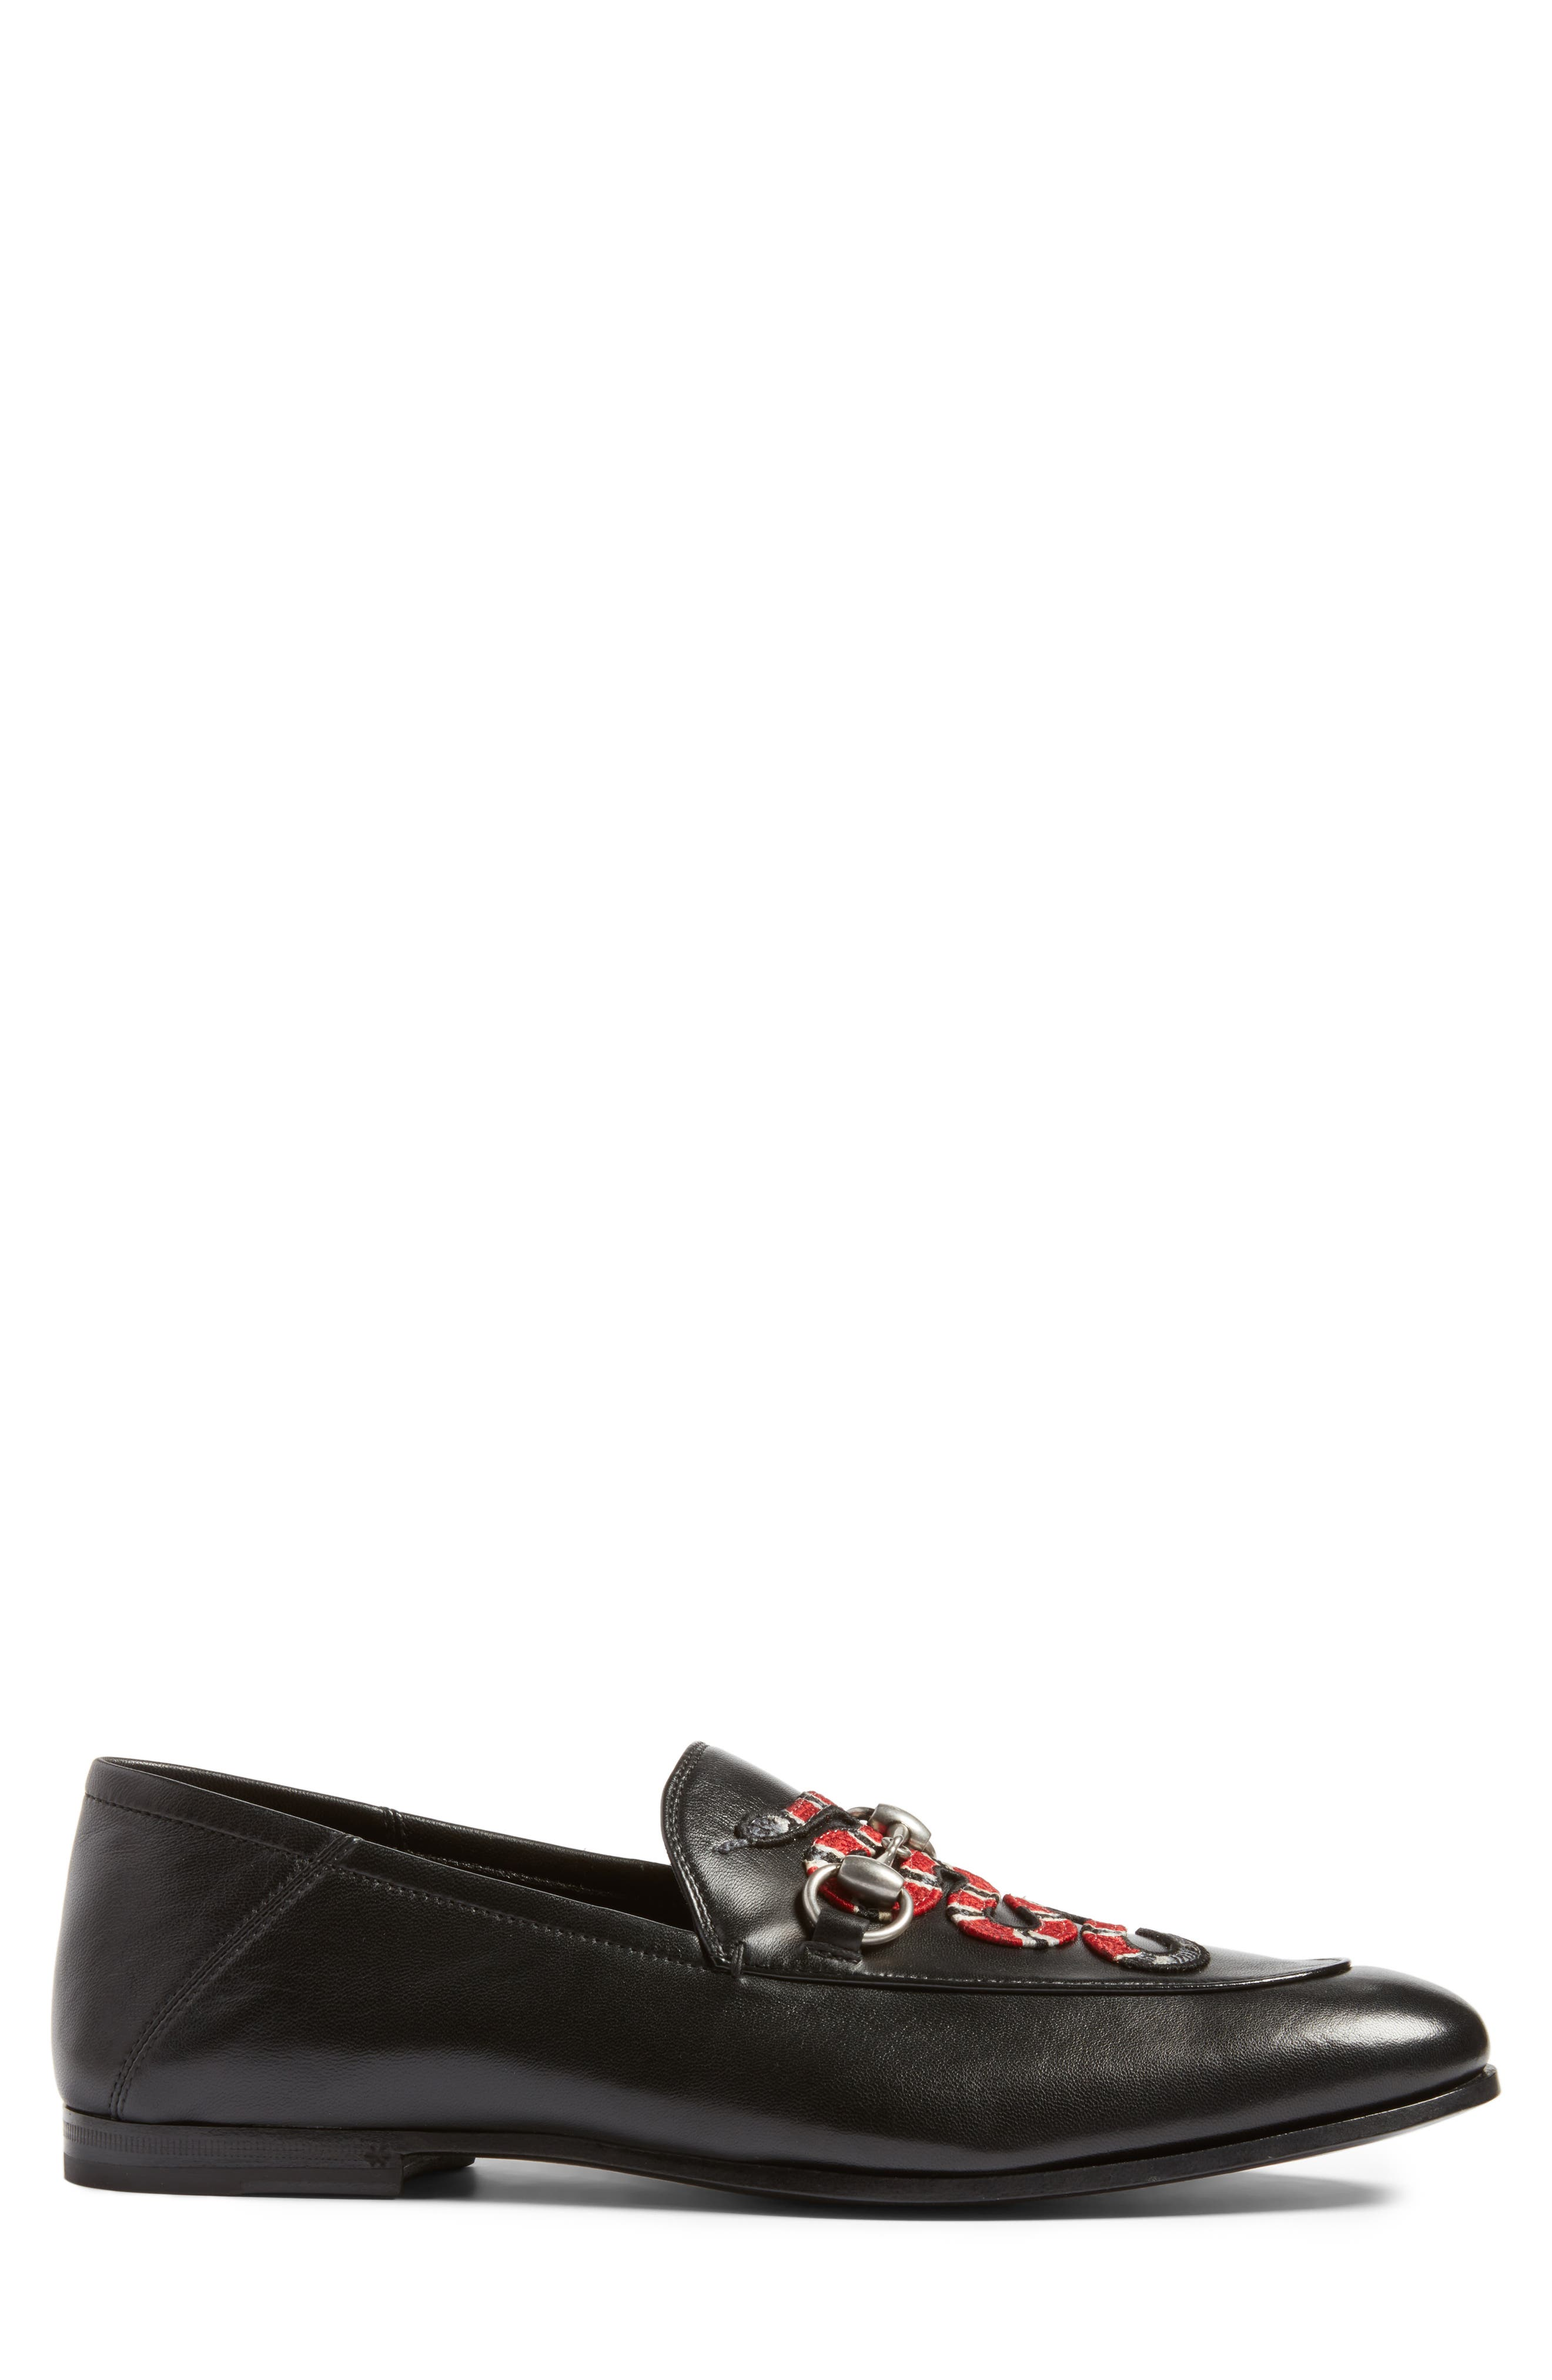 Brixton Leather Loafer,                             Alternate thumbnail 13, color,